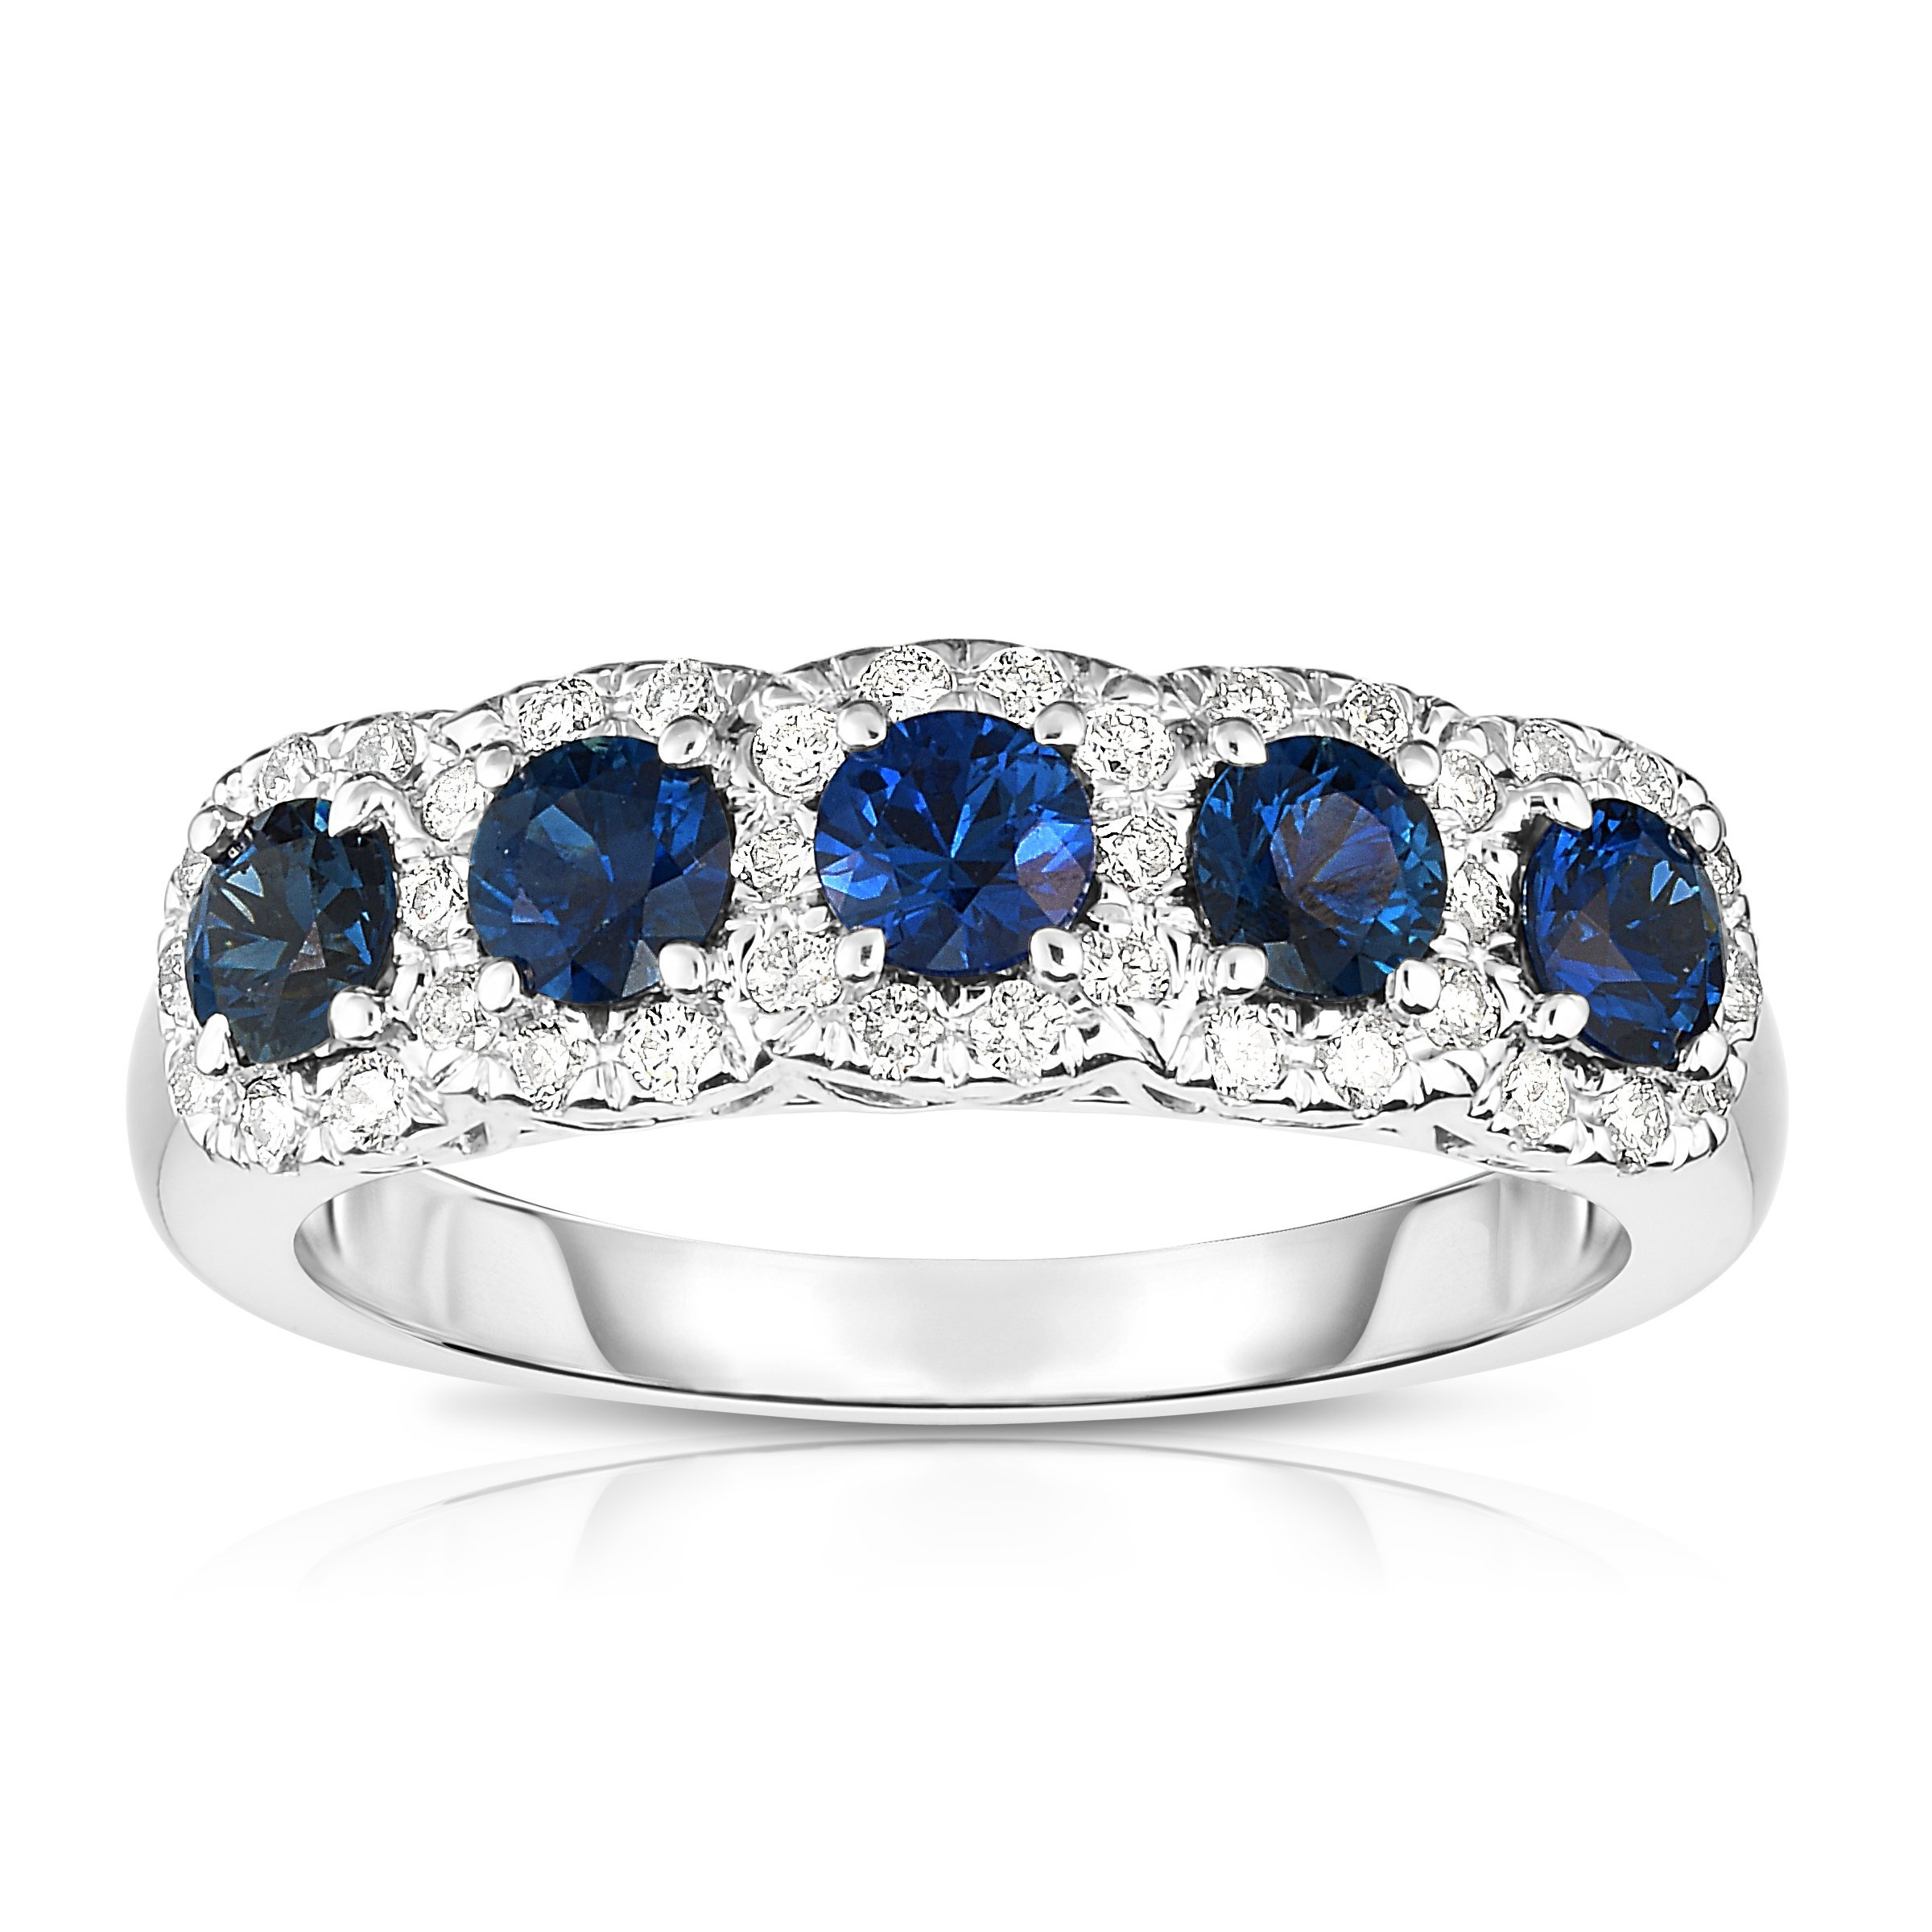 Noray Designs 14K White Gold Blue Sapphire & Diamond (0.35 Ct, G-H Color, SI2-I1 Clarity) Wedding Ring